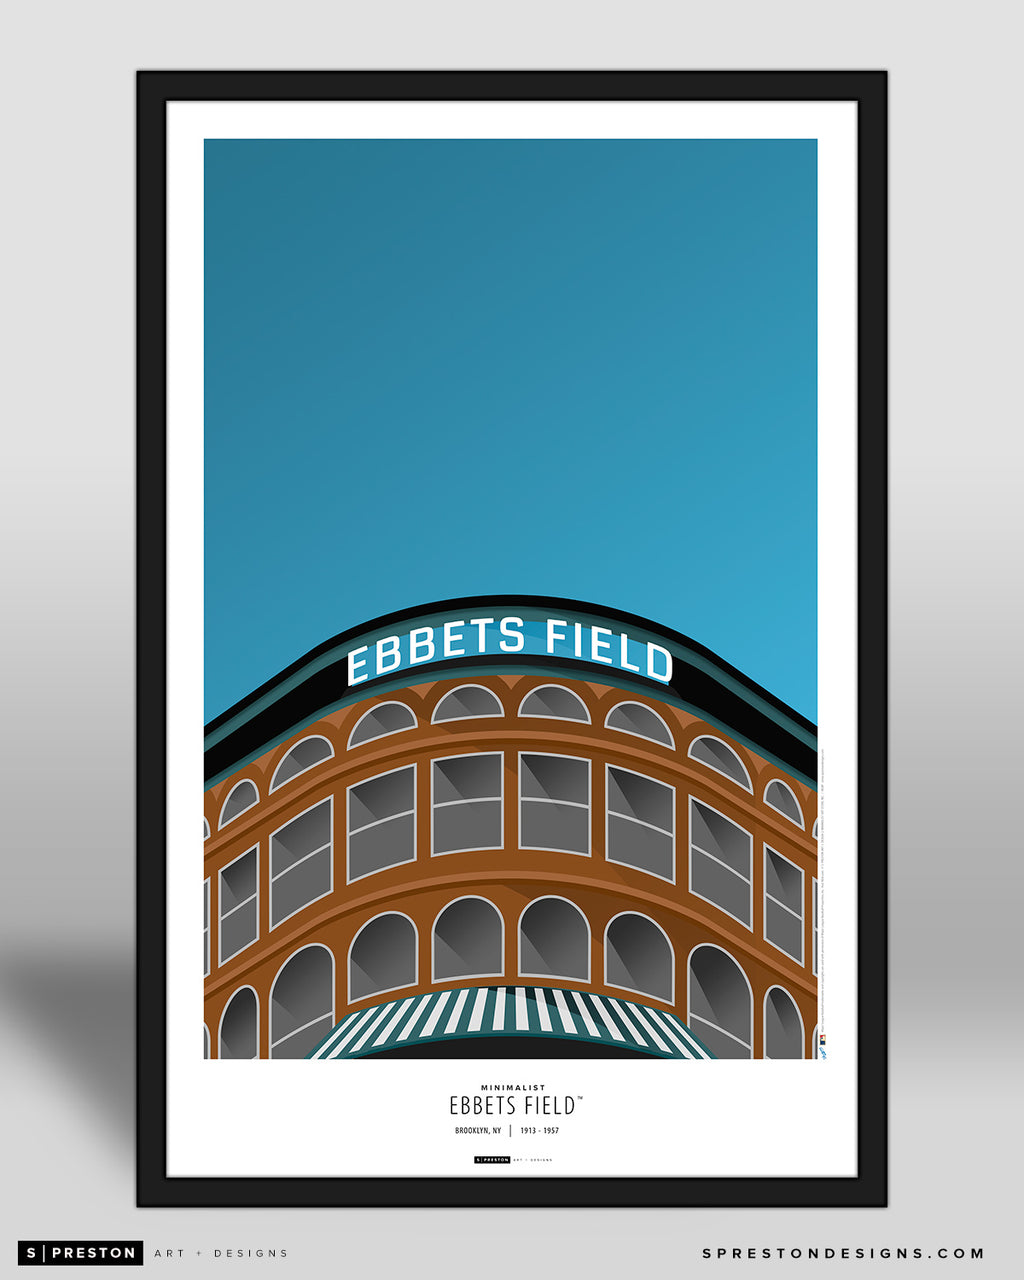 Minimalist Ebbets Field Poster Print Los Angeles Dodgers - S Preston